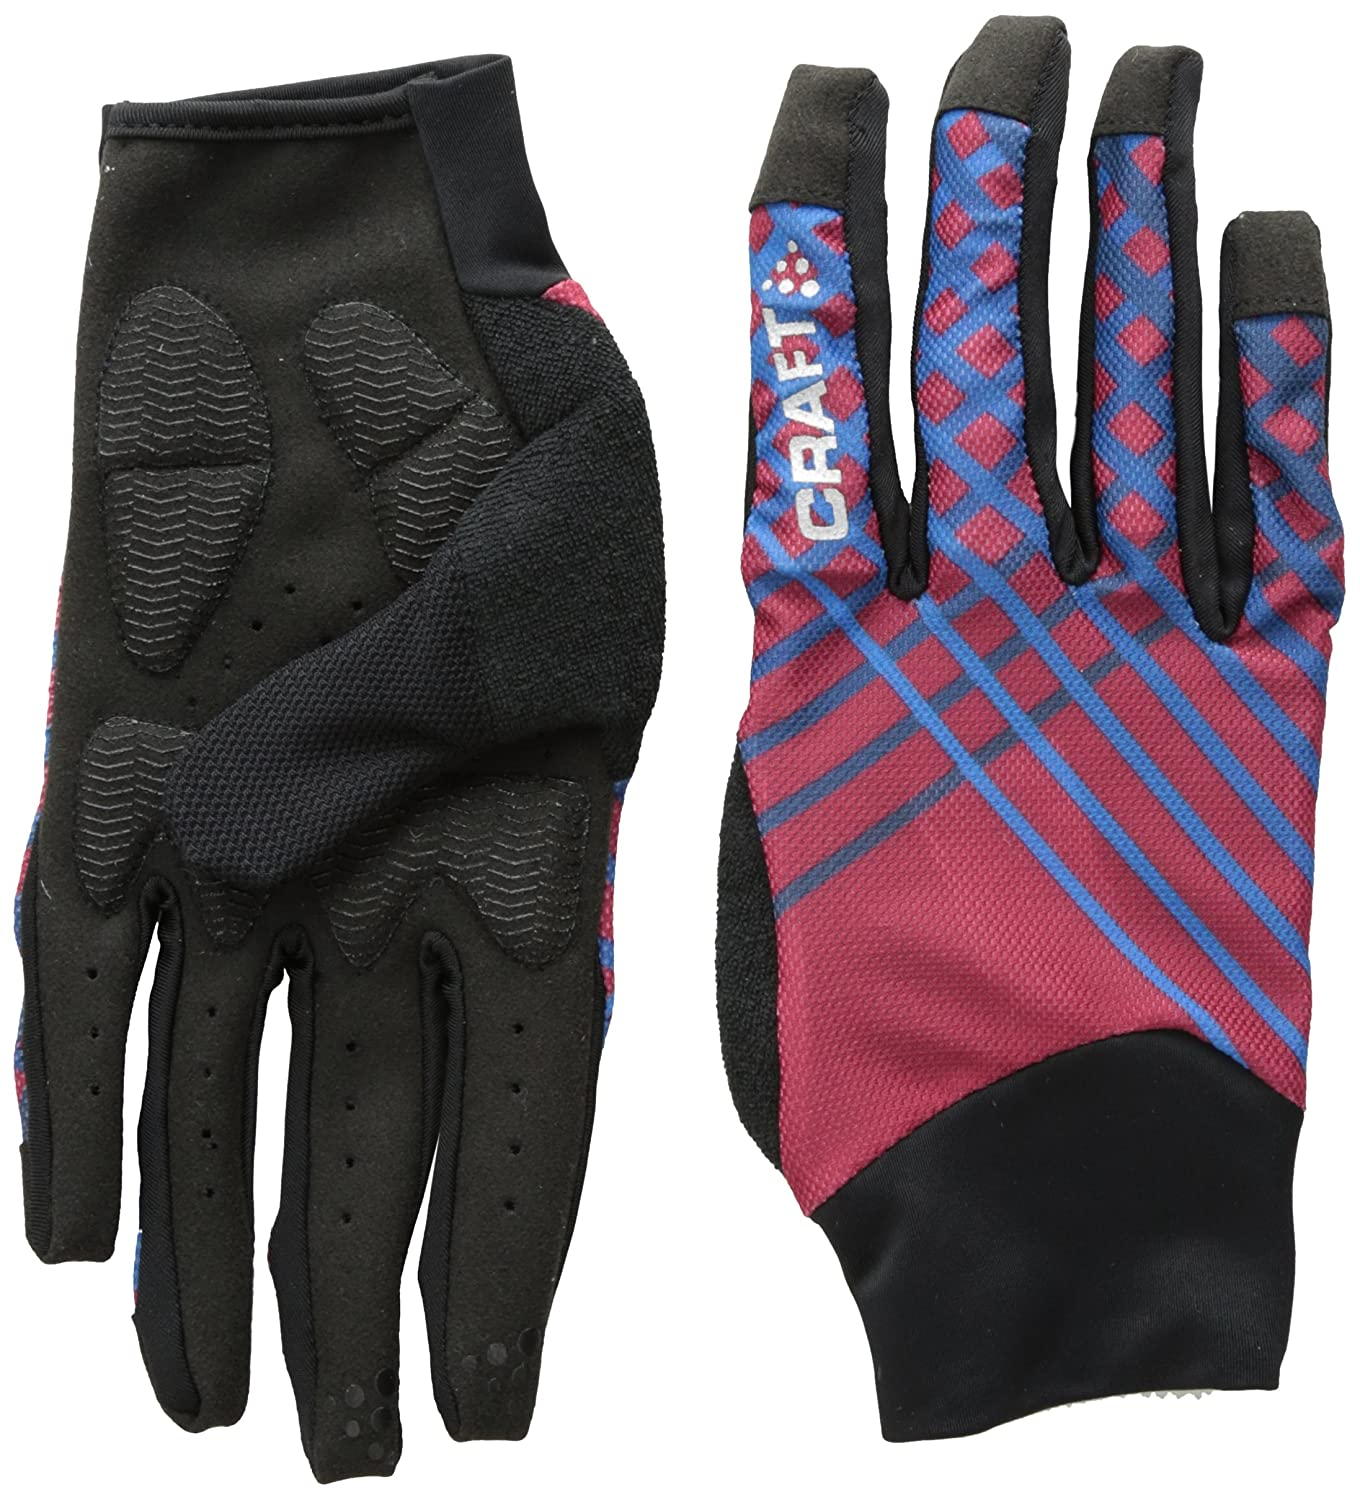 Amazon.com  Craft Sportswear Charge Running Training Bike Cycling  Reflective Gloves with Gel Inserts  Sports   Outdoors 578983a1f